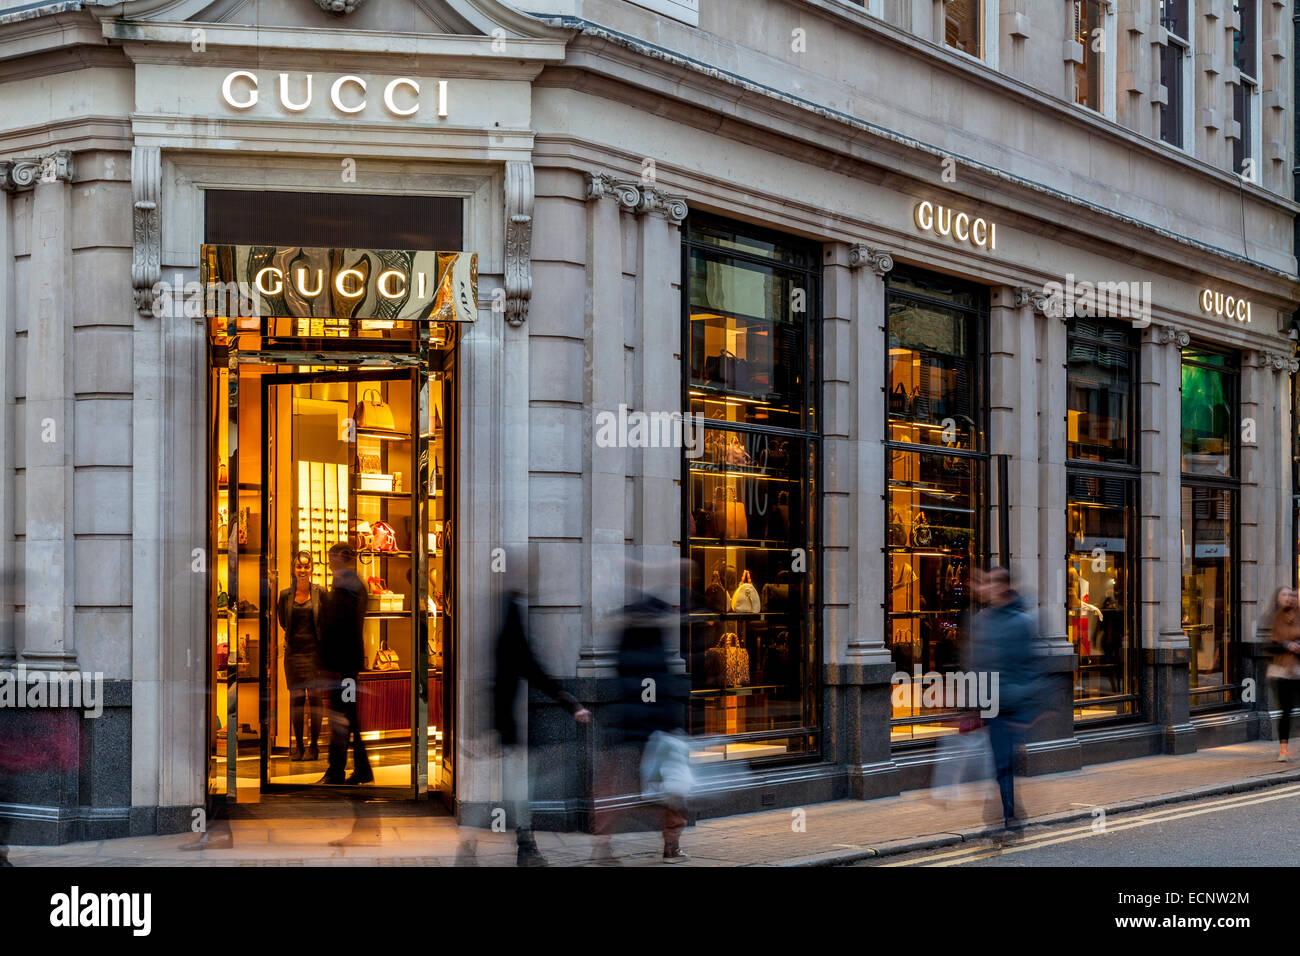 the gucci store in old bond street london england stock photo 76698012 alamy. Black Bedroom Furniture Sets. Home Design Ideas